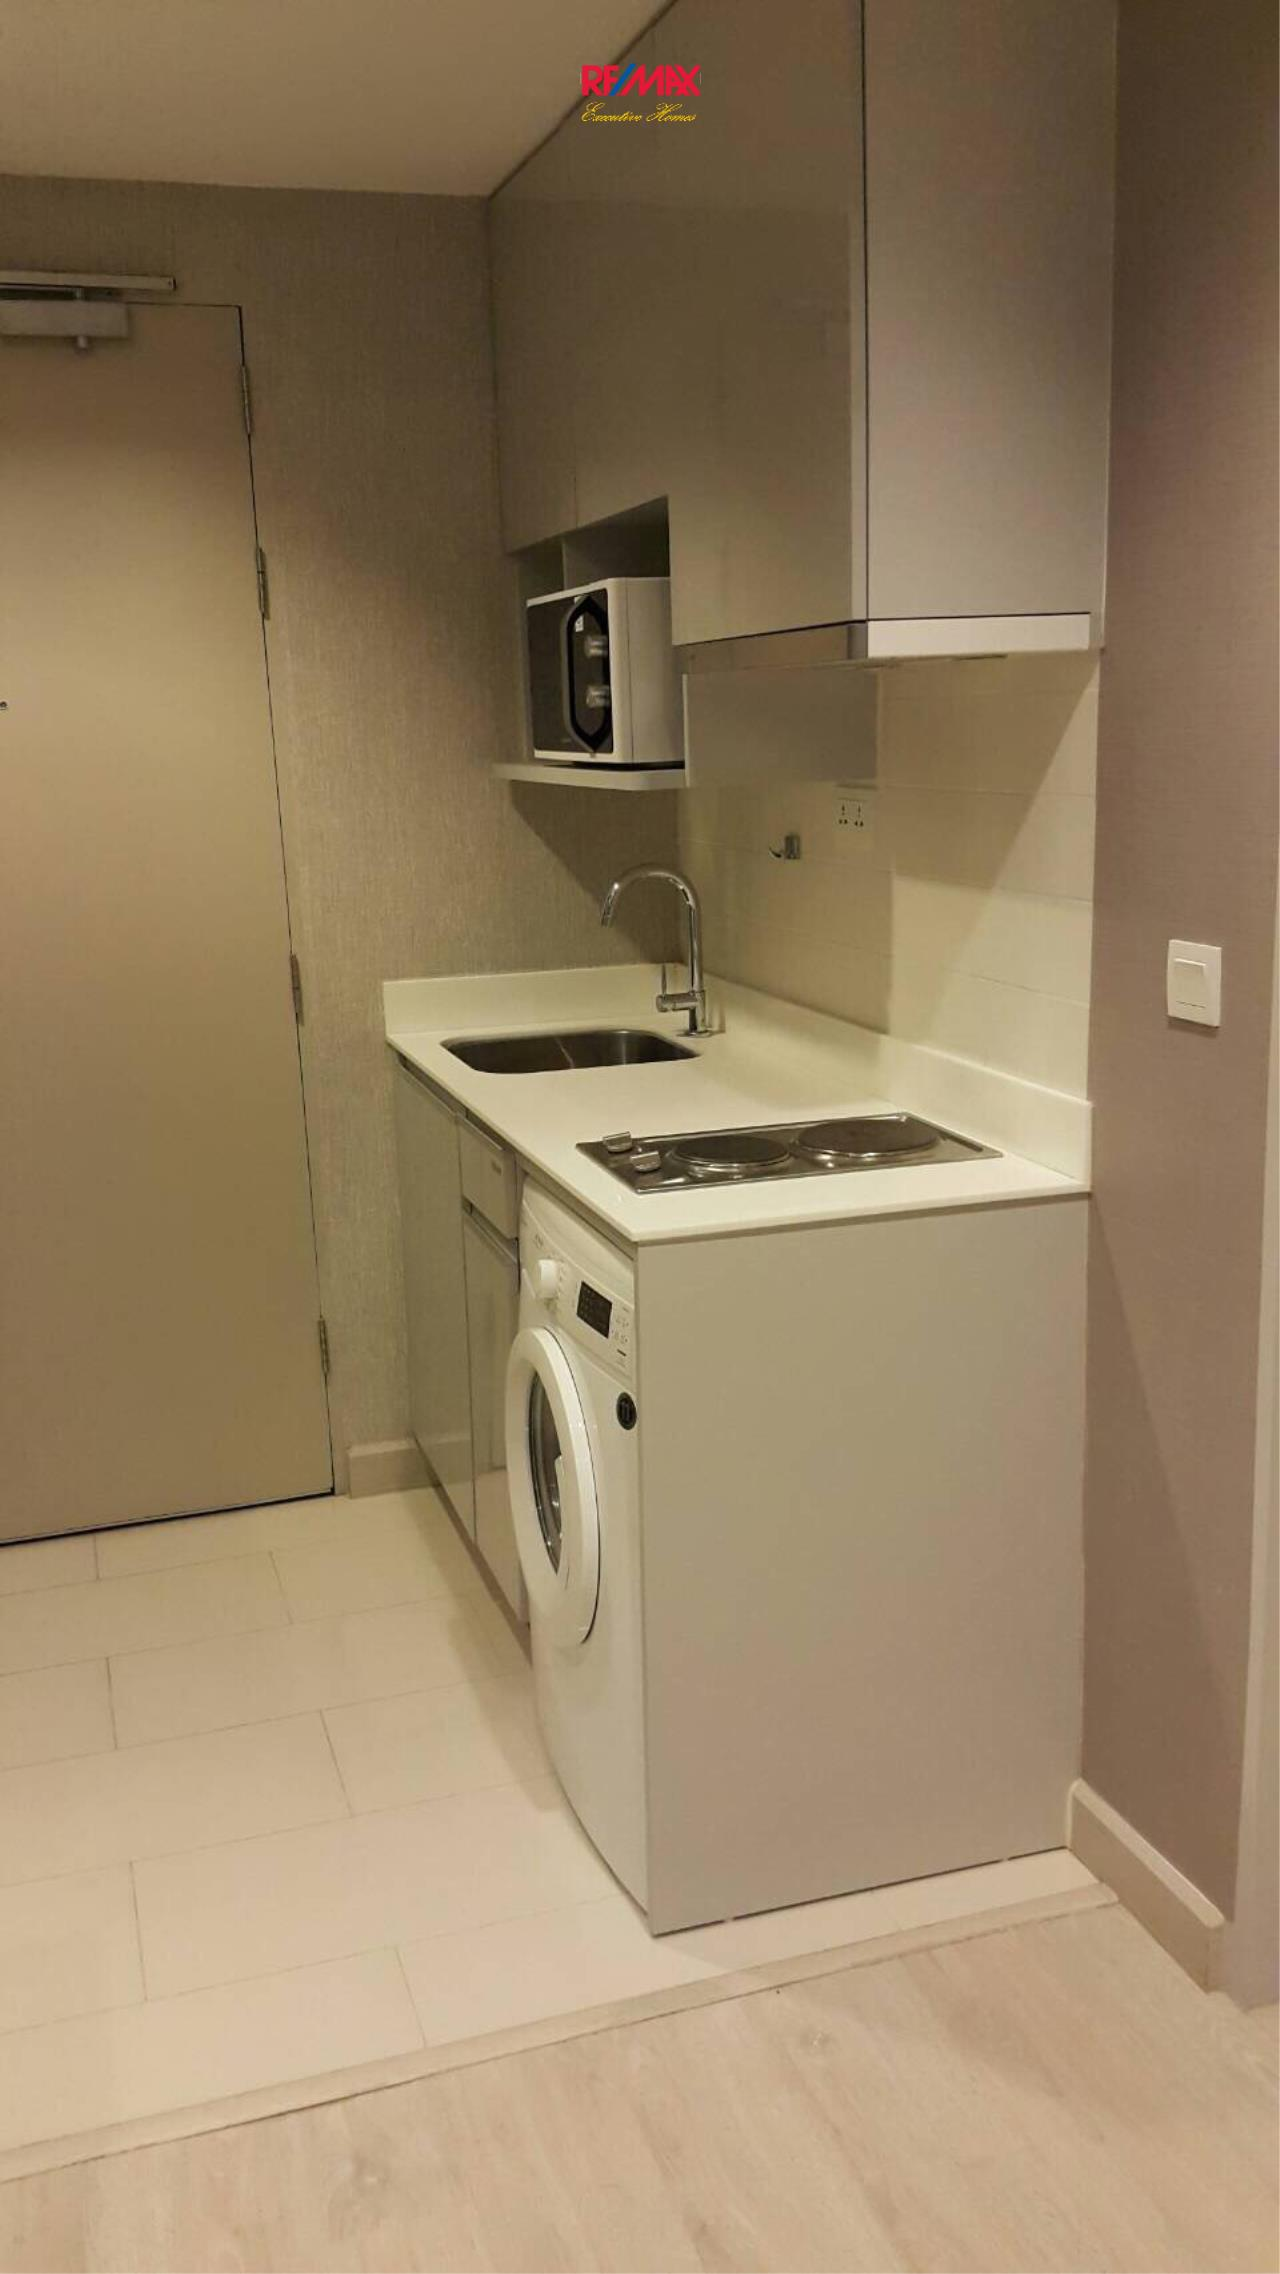 RE/MAX Executive Homes Agency's Nice 1 Bedroom for Rent Ideo Mobi Sathorn 10